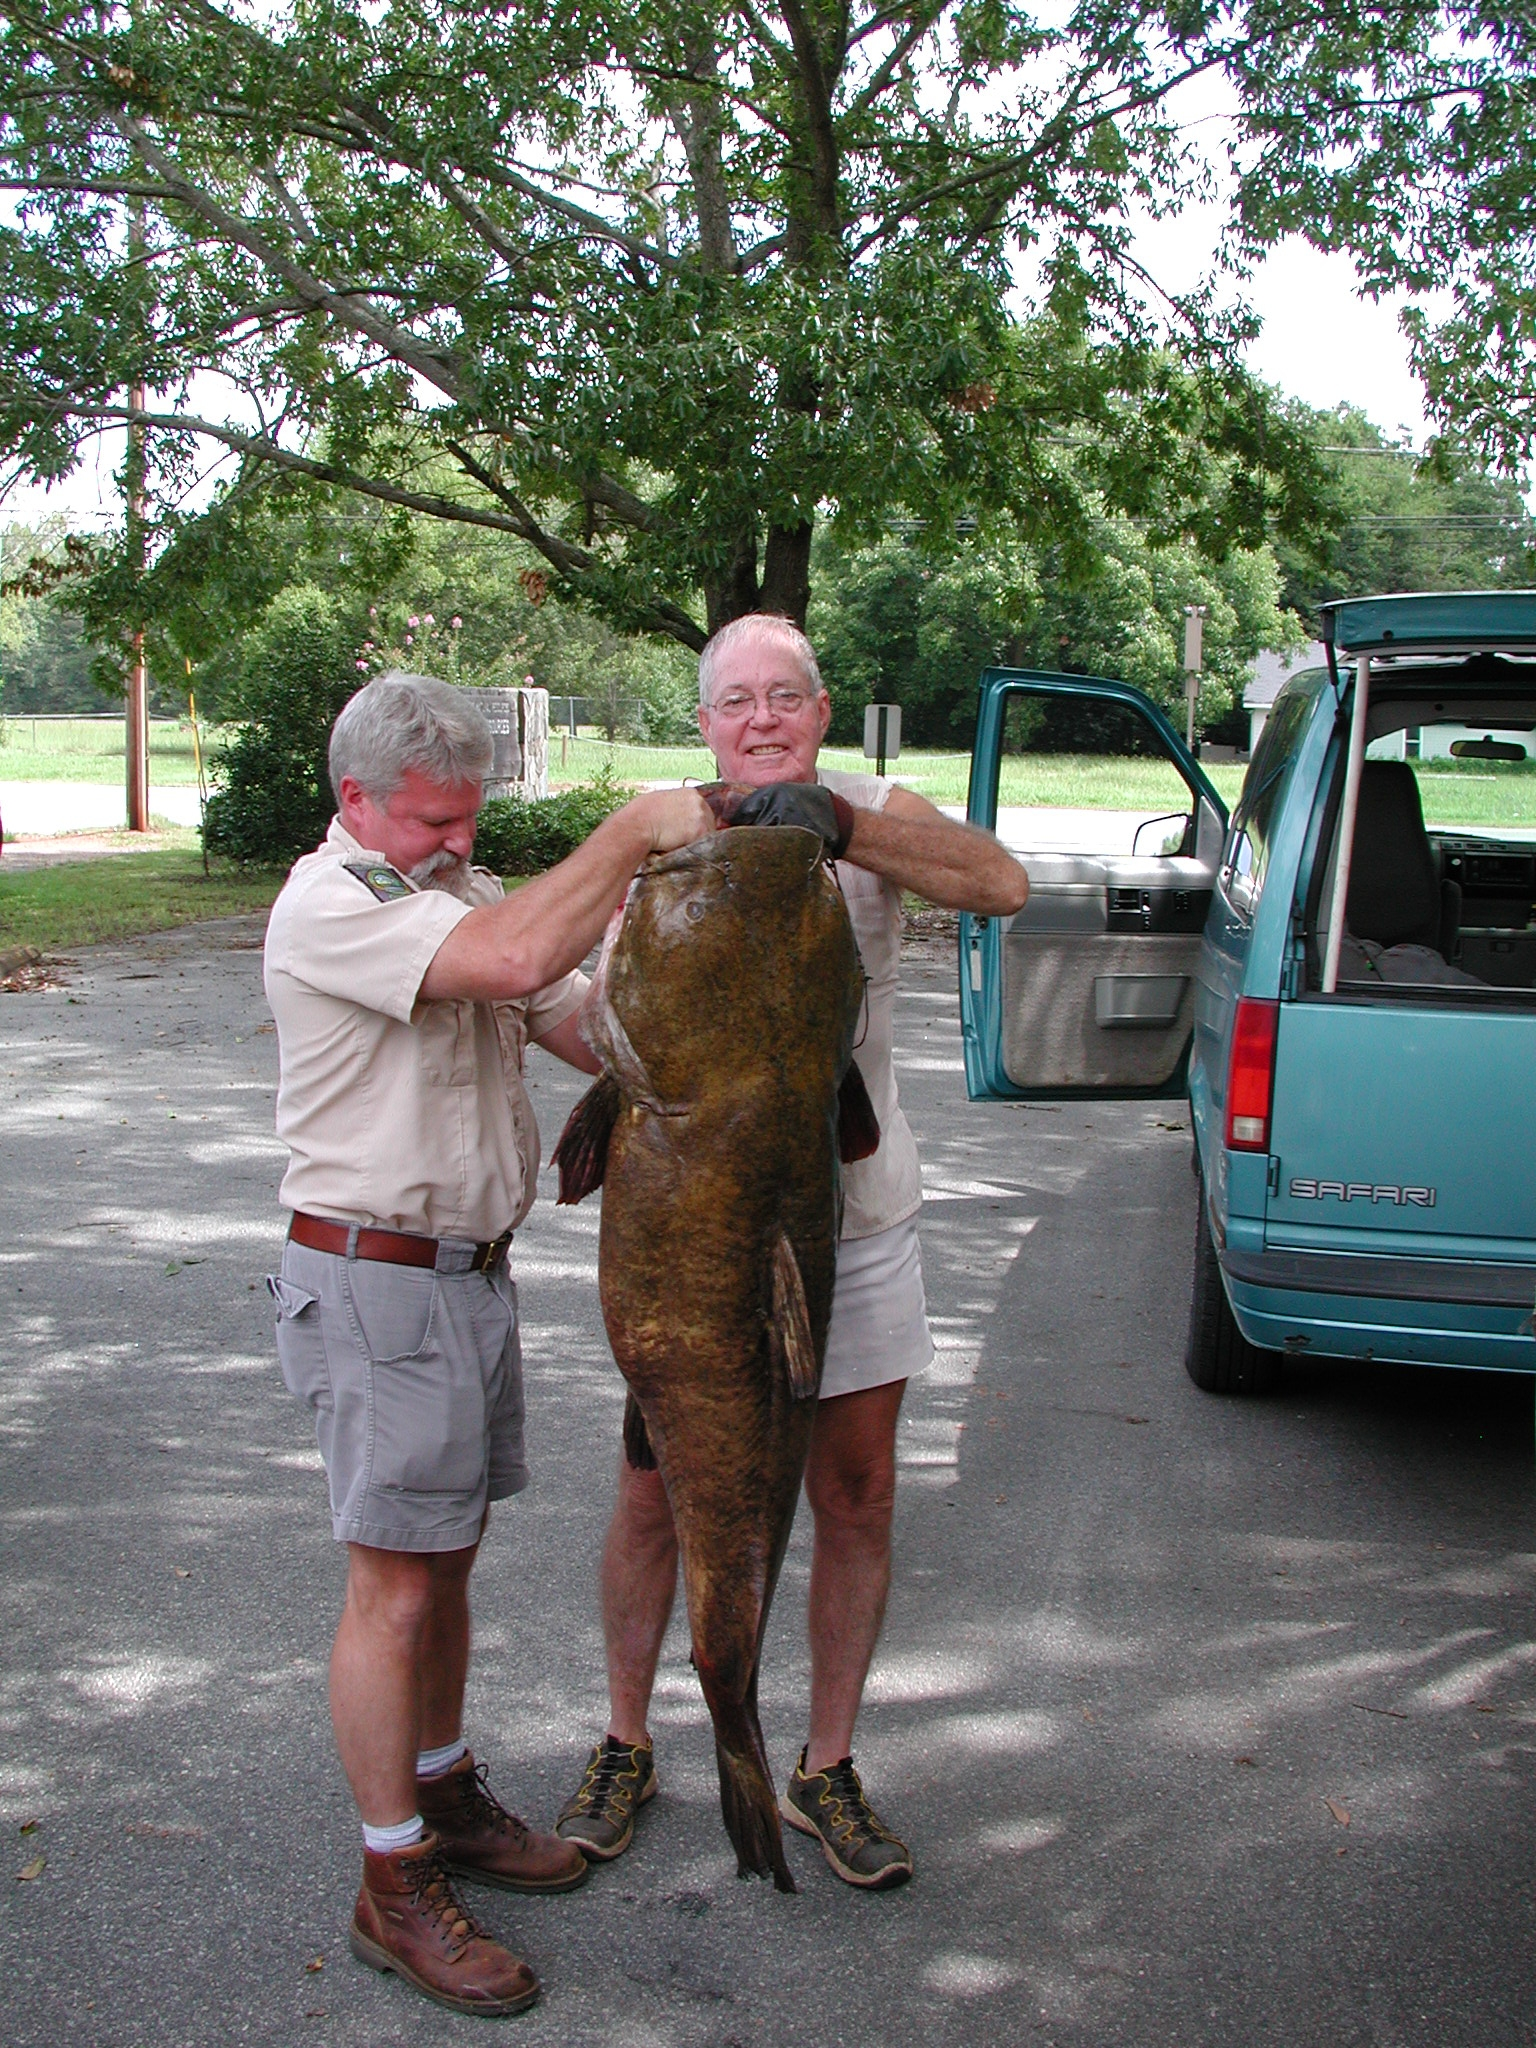 Why fish georgia flathead catfish in altamaha river up to 100 pounds sciox Image collections